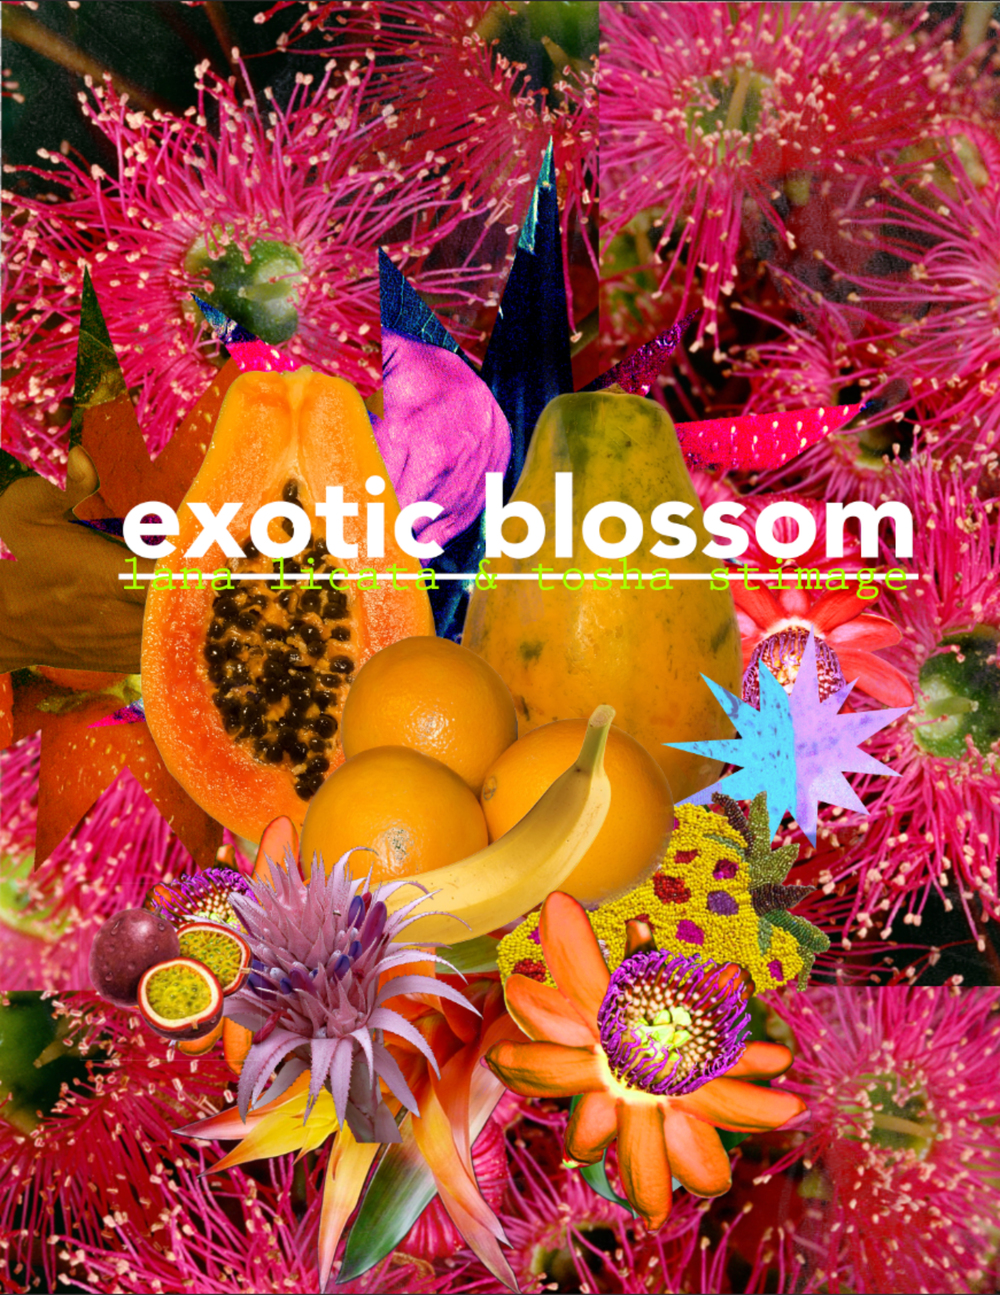 EXOTIC BLOSSOM Opening Reception Friday May 27, 2016 7-10pm On view 5.27-6.24  Exotic Blossom is a dual show by Lana Licata and Tosha Stimage. The show is a celebration of material, color, and subsequent form. Quality Gallery 3040 Martin Luther King Jr. Way Oakland, Ca 94609 MORE INFO